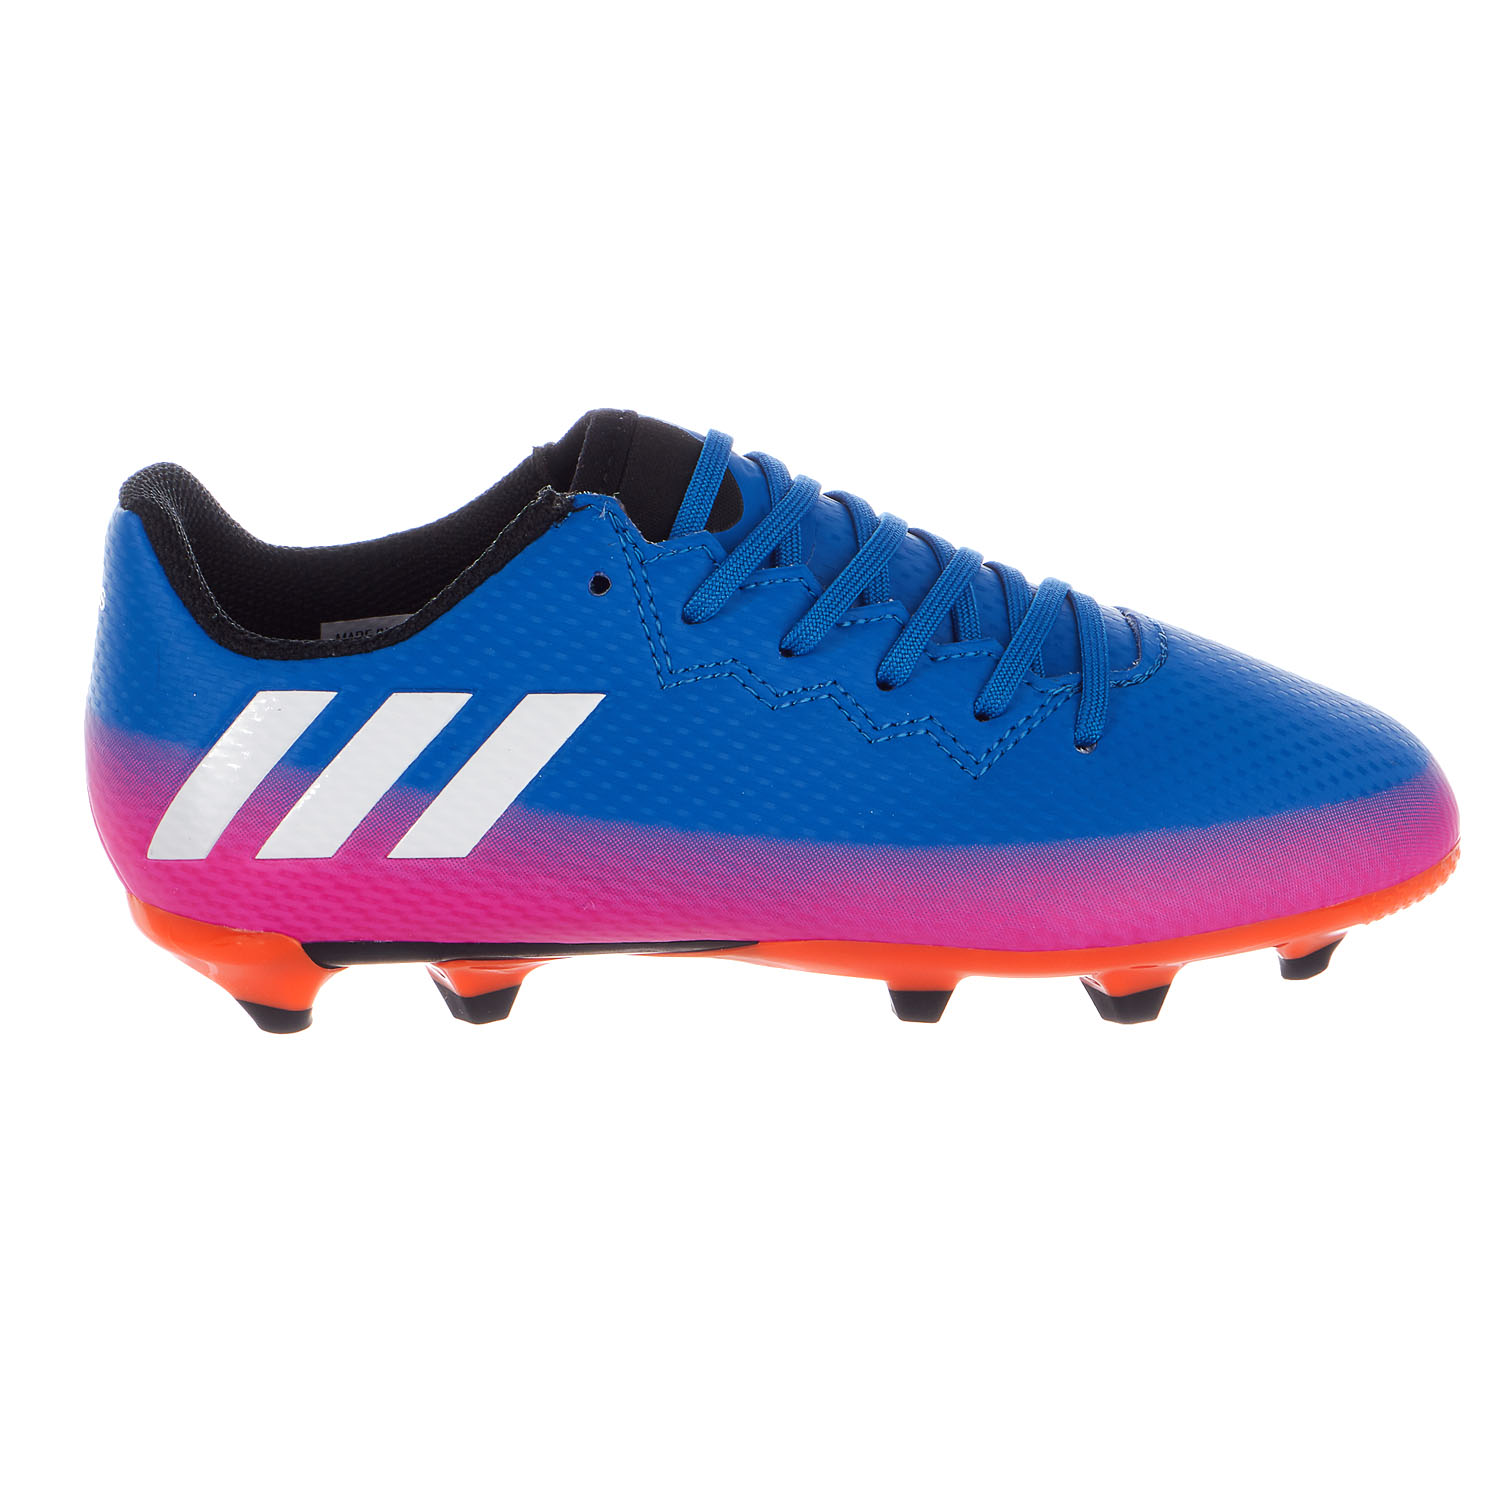 Adidas Messi 16.3 J Firm Ground Soccer Cleat  - Boys